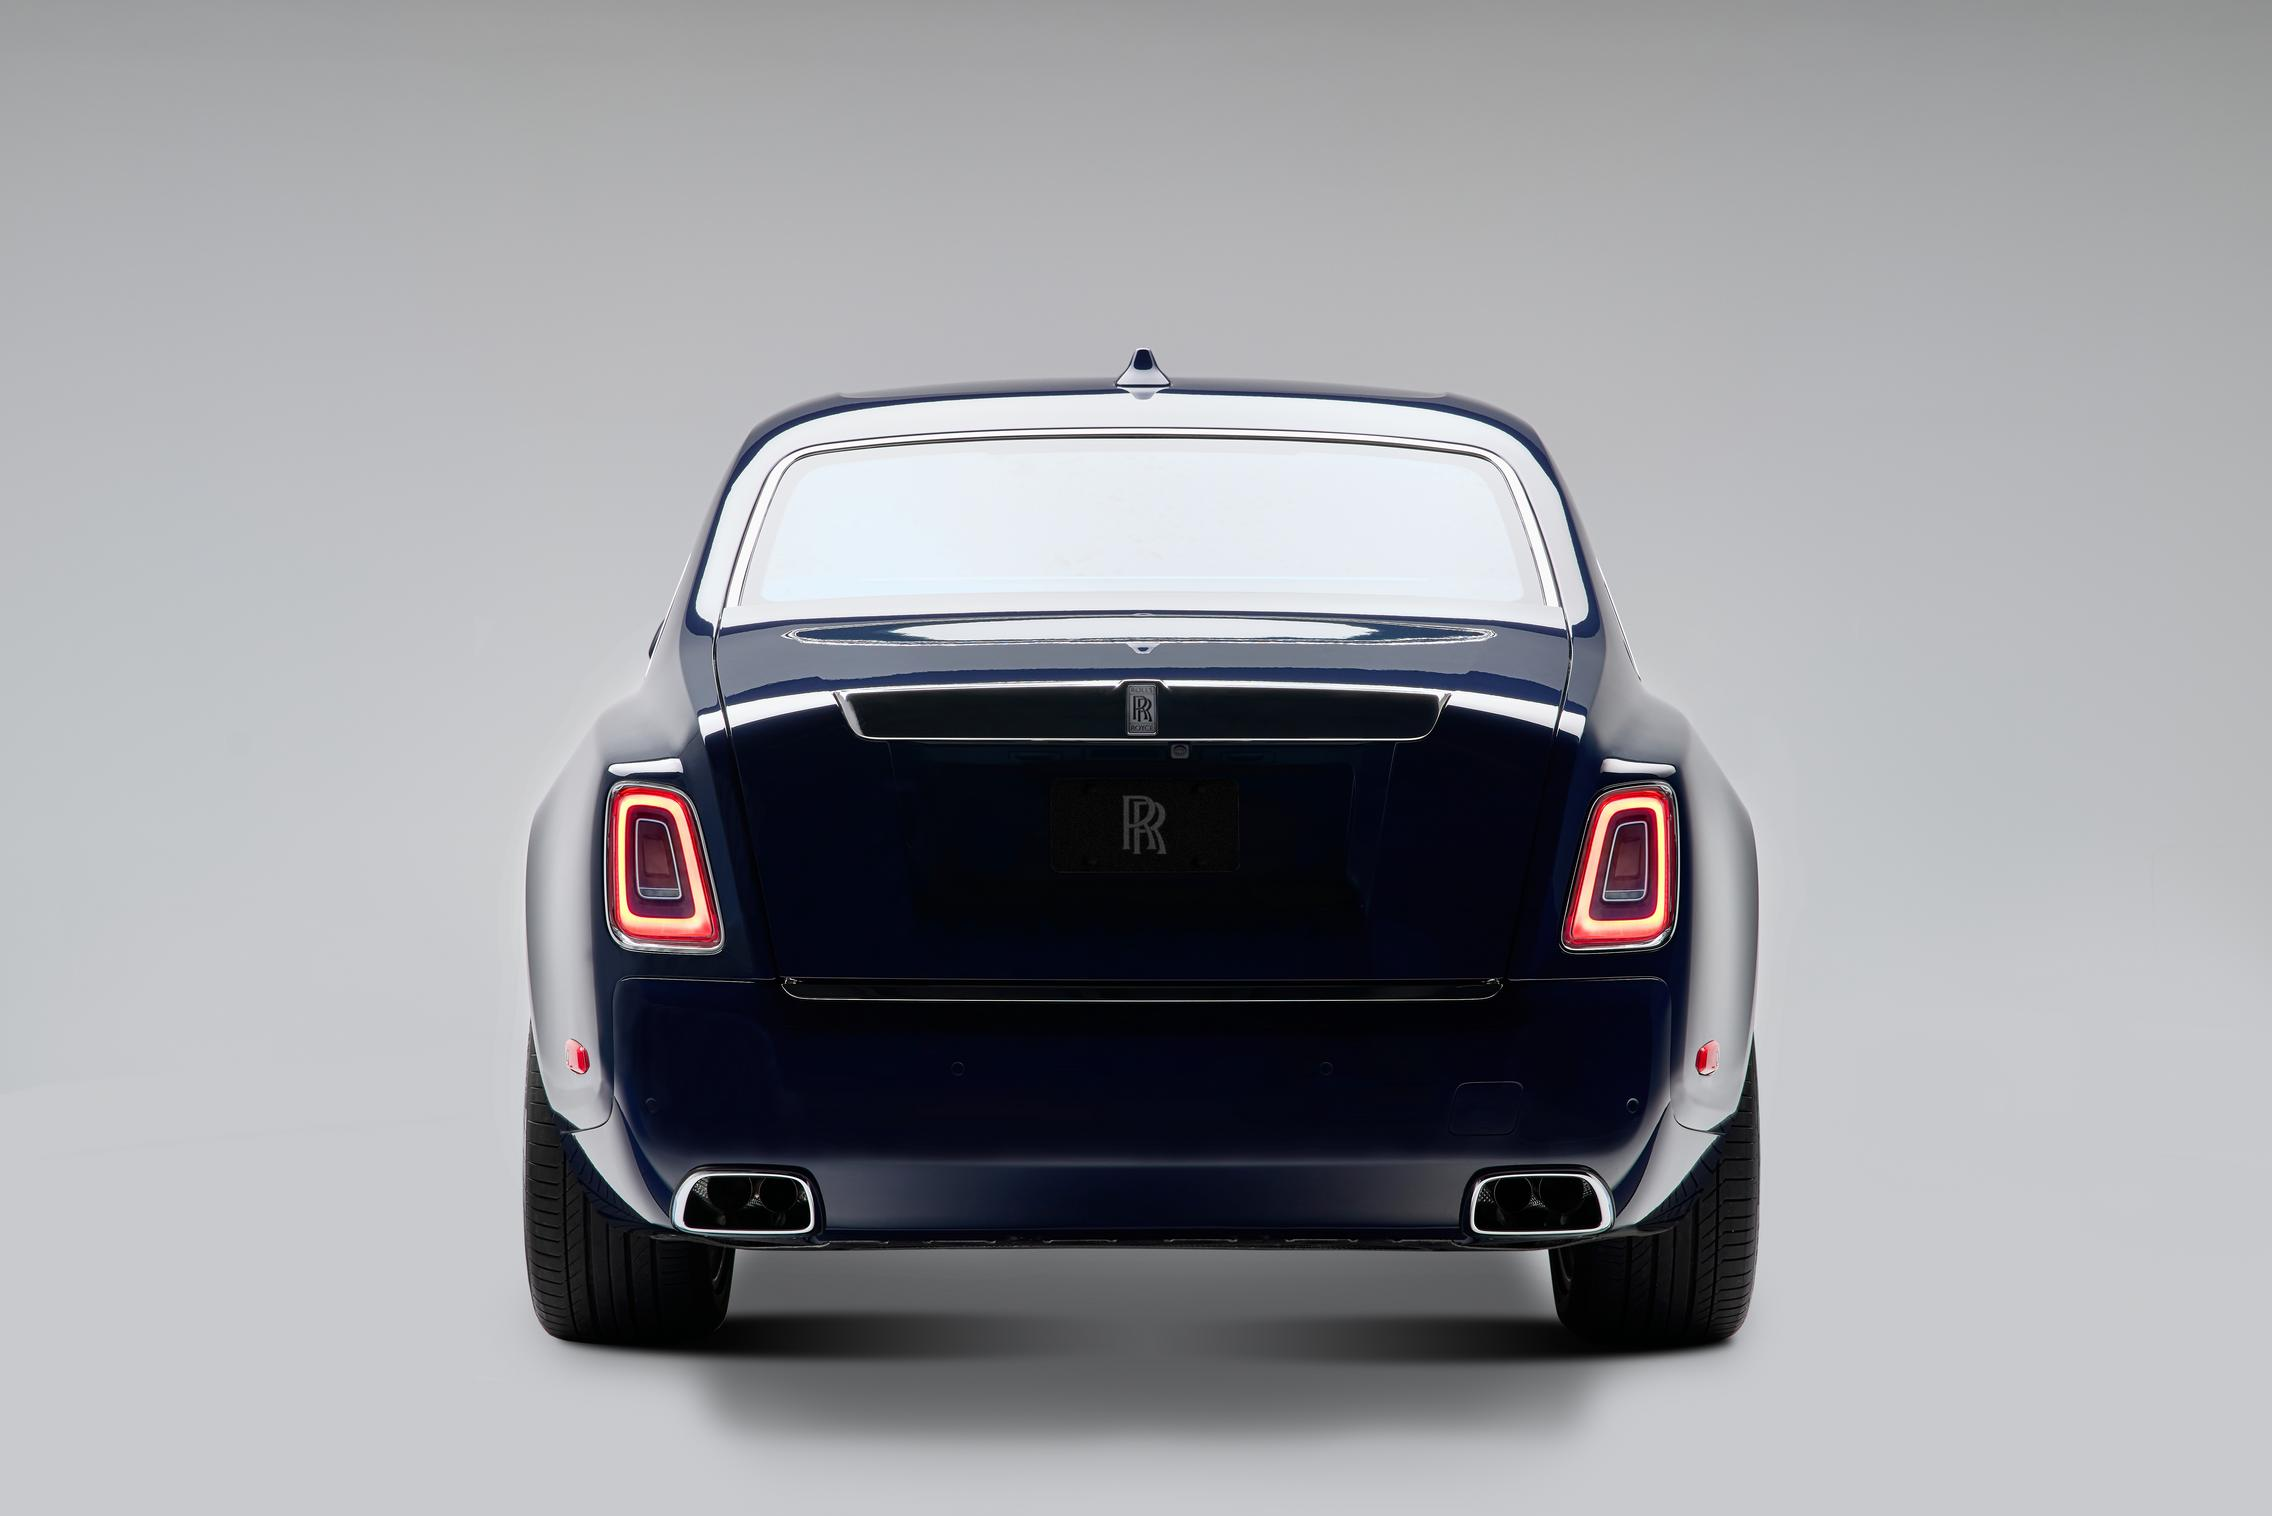 Rolls-Royce Phantom rear